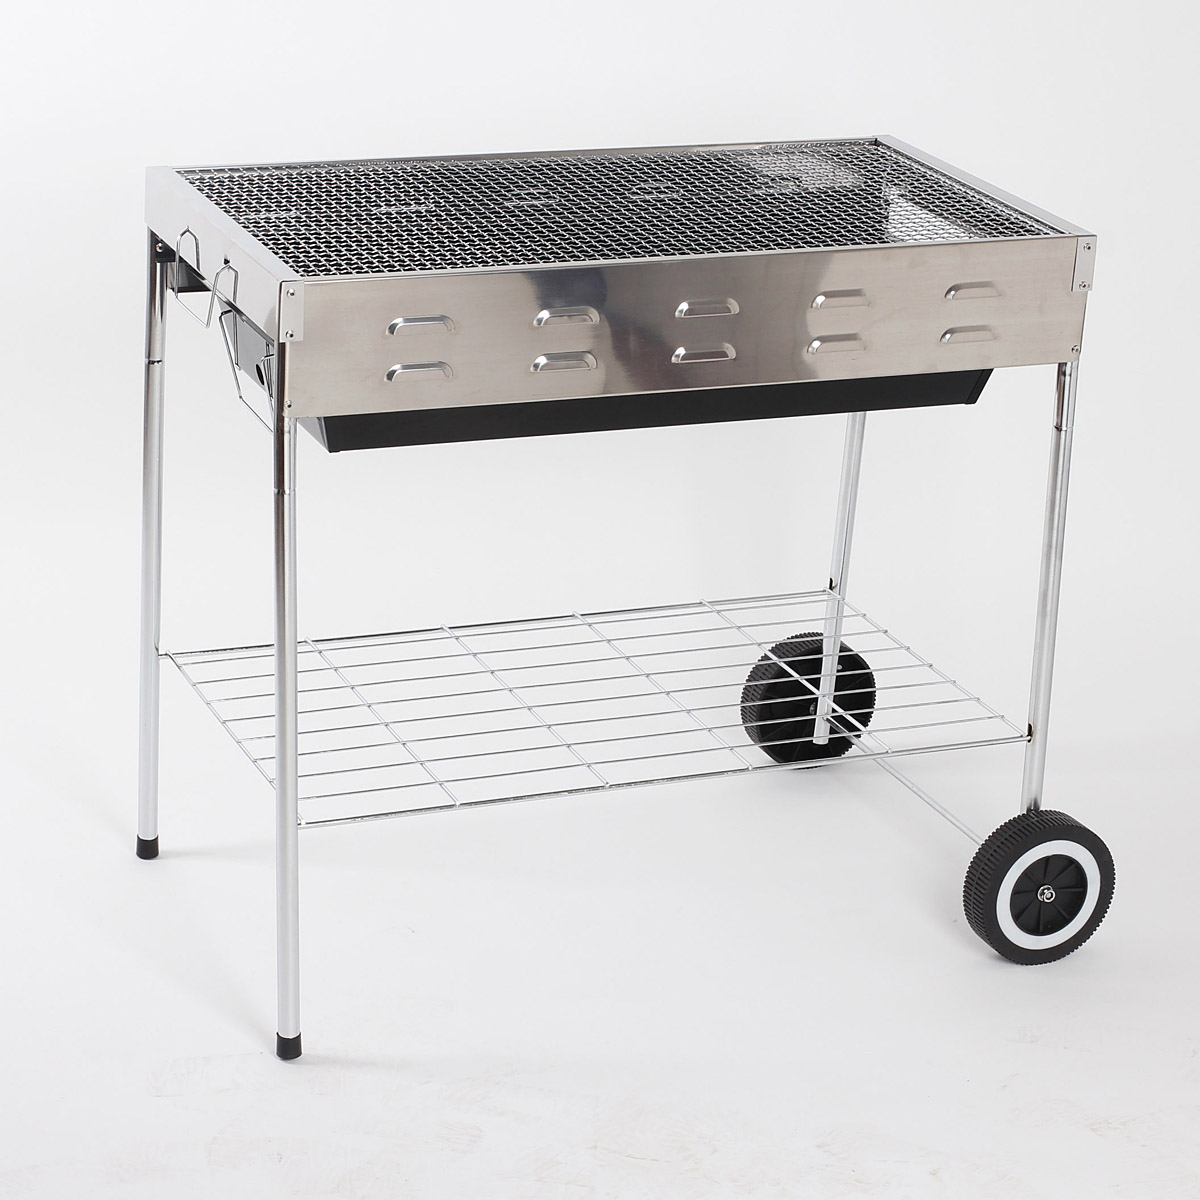 Movable stainess steel outdoor bbq charcoal grill